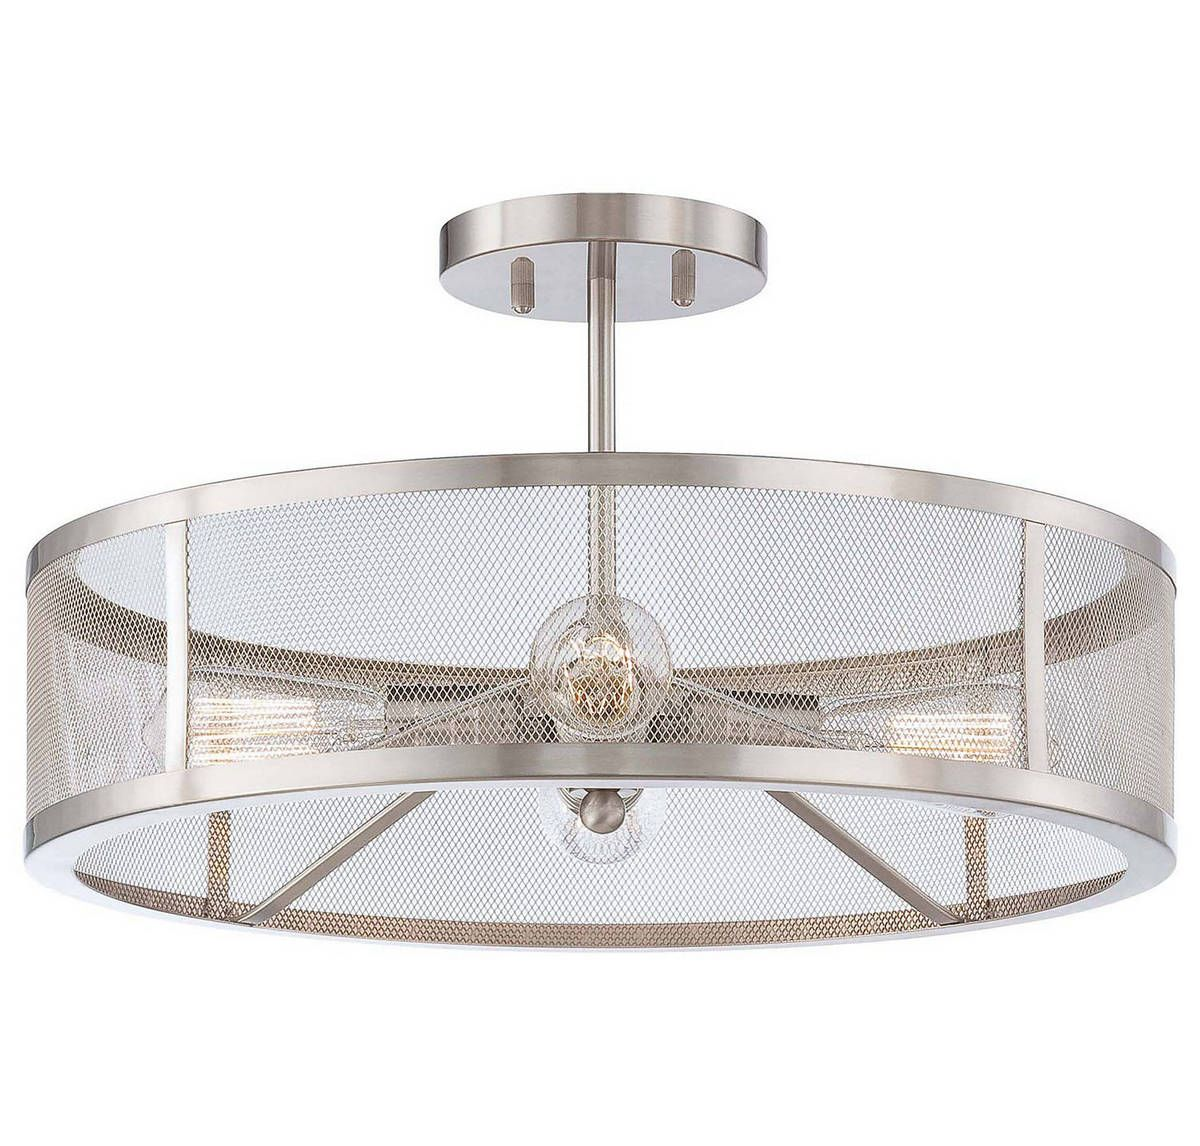 Minka Lavery Downtown Edison 4 Light 19 Ceiling Light In Brushed Nickel